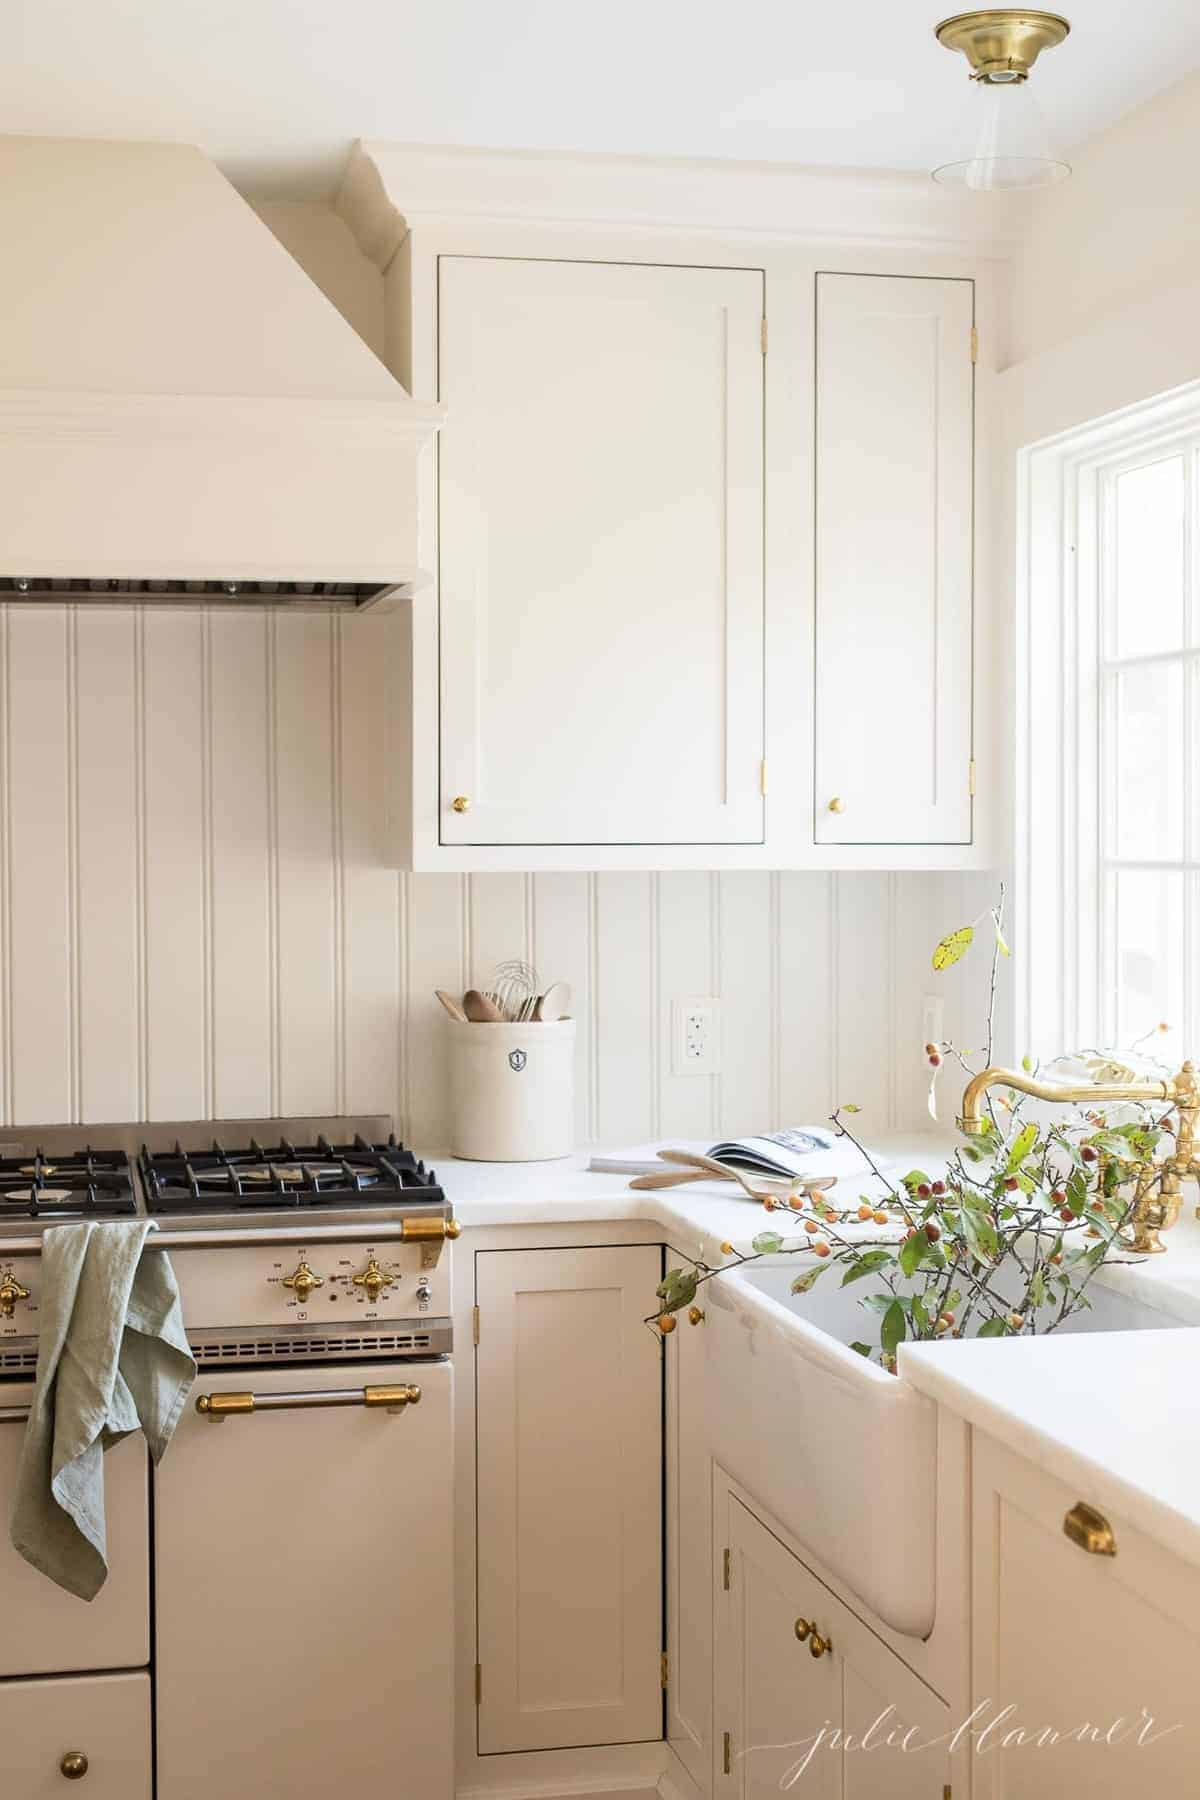 A farmhouse style kitchen with a beadboard backsplash, and cut branches in the farm sink.